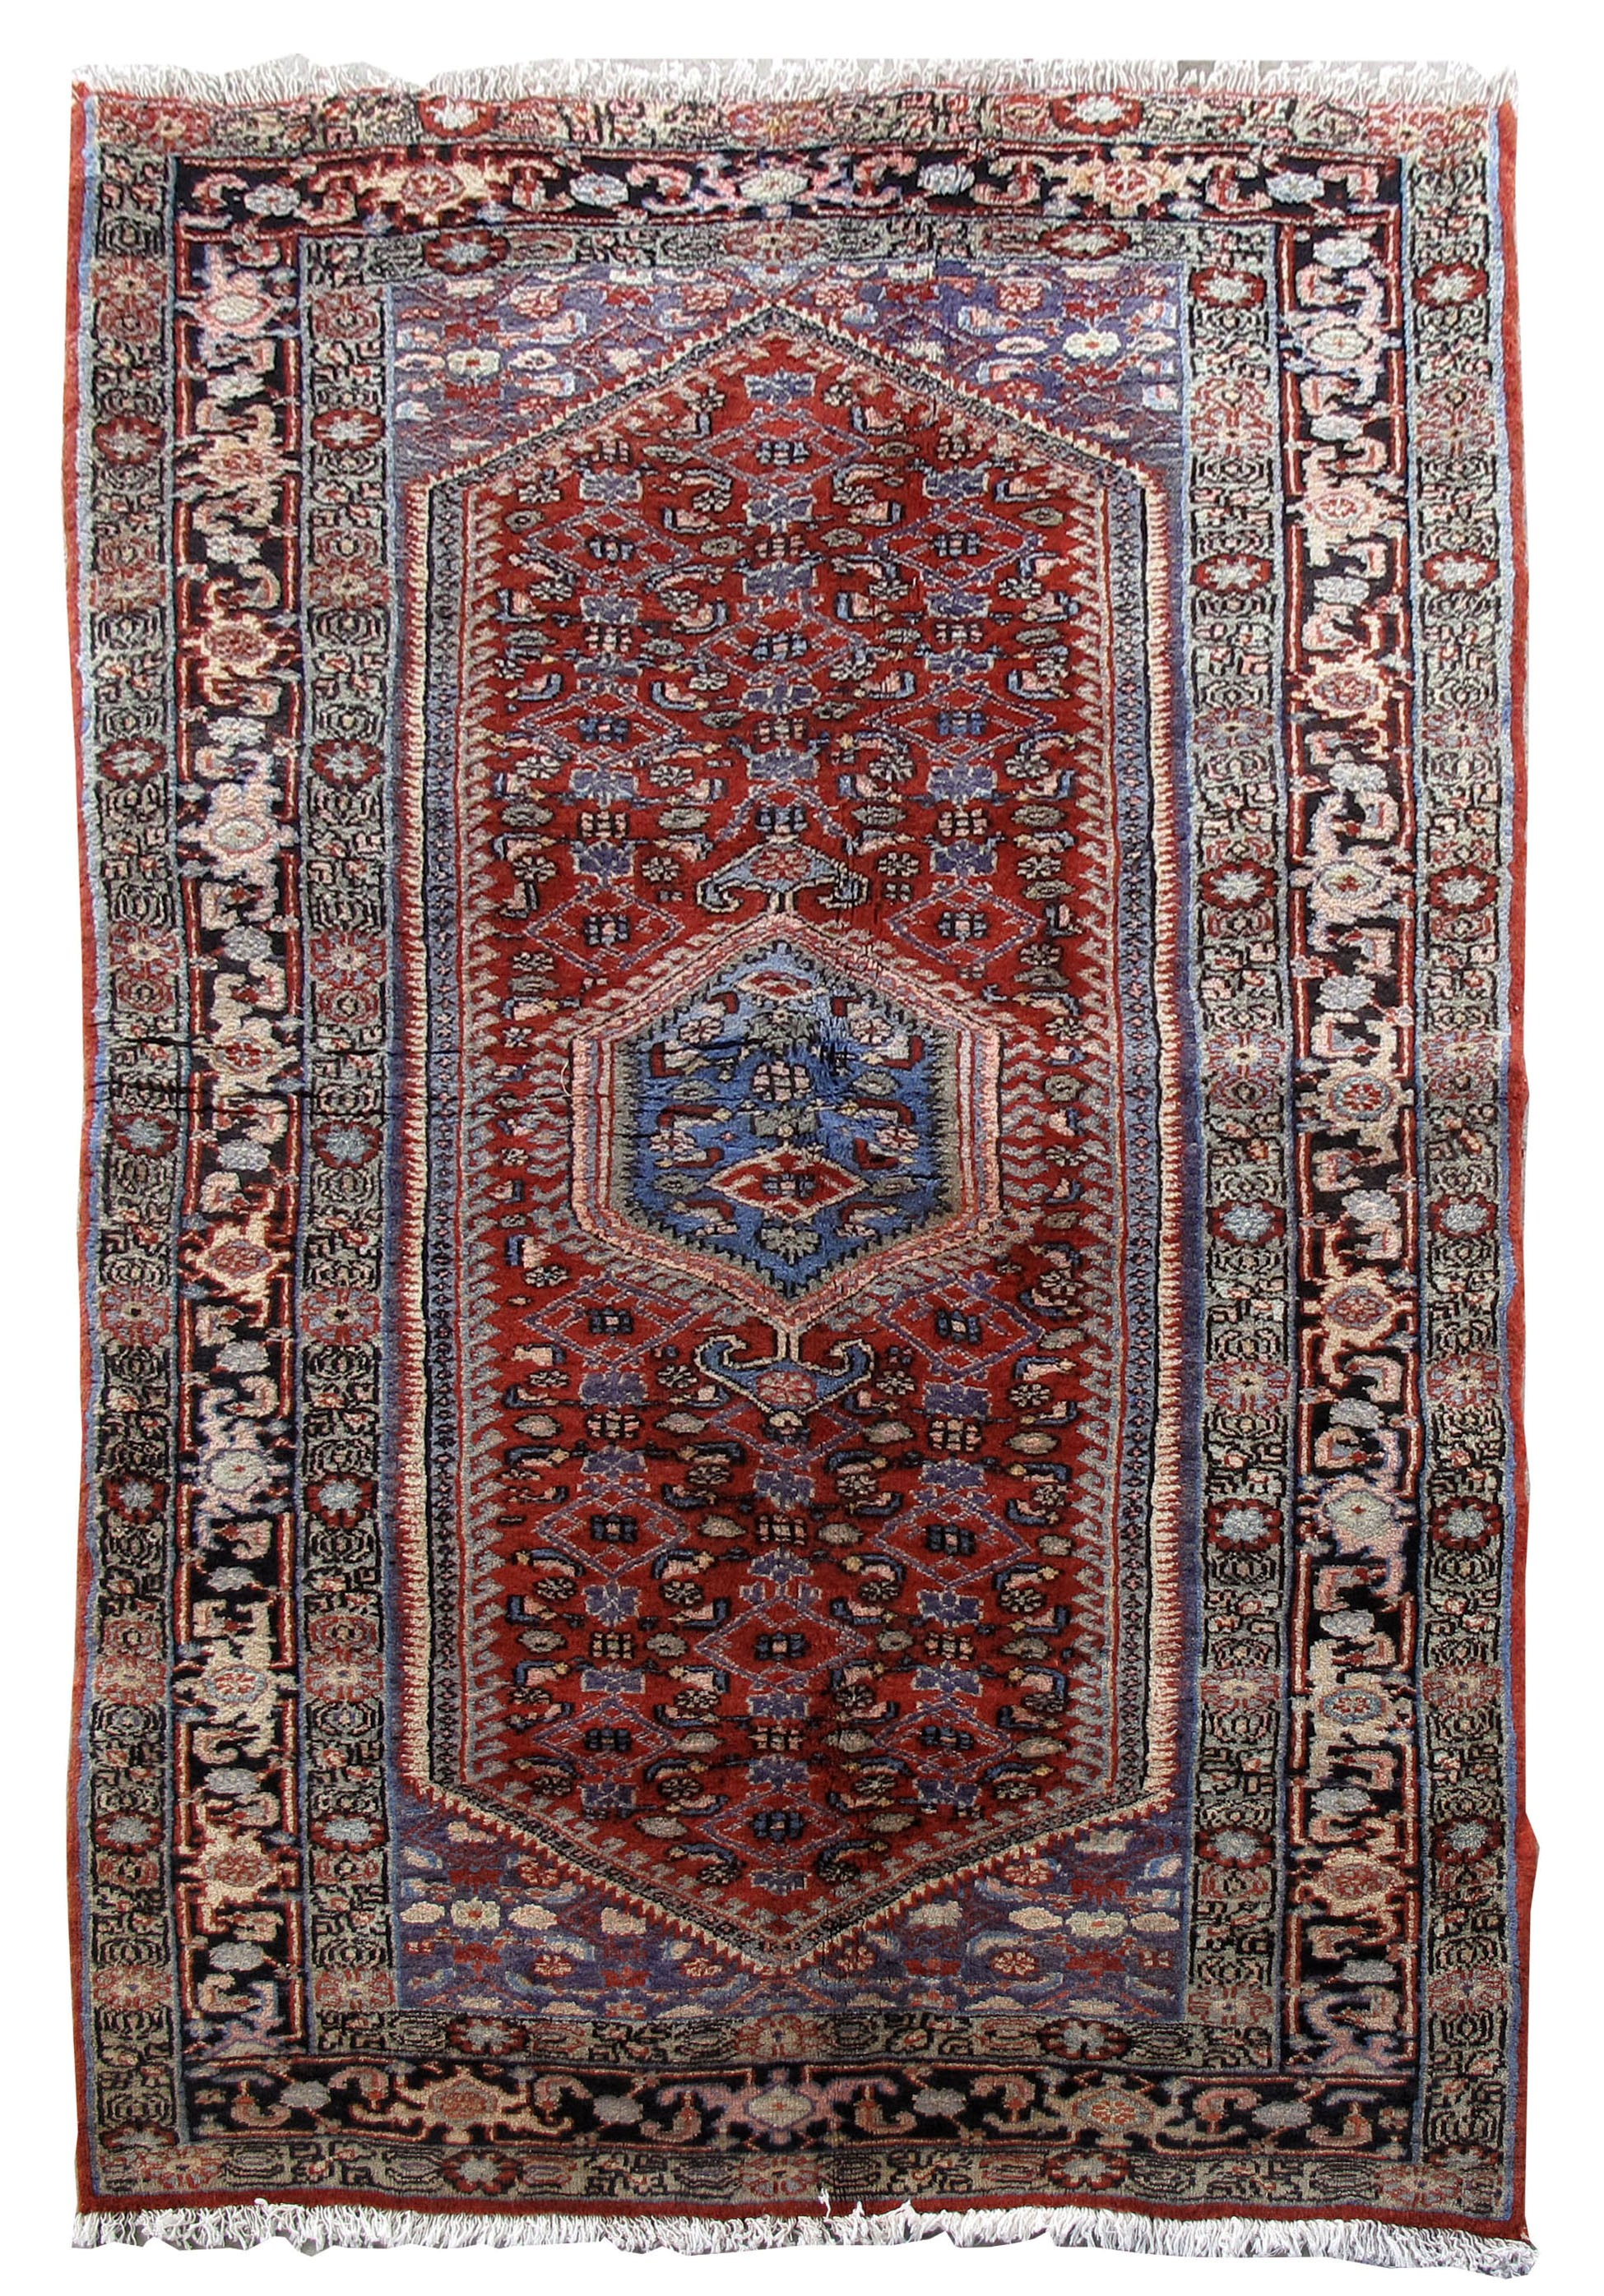 Hamadan cheap rugs rug 4x7 persian burchalow carpet hand for Cheap persian rugs nyc